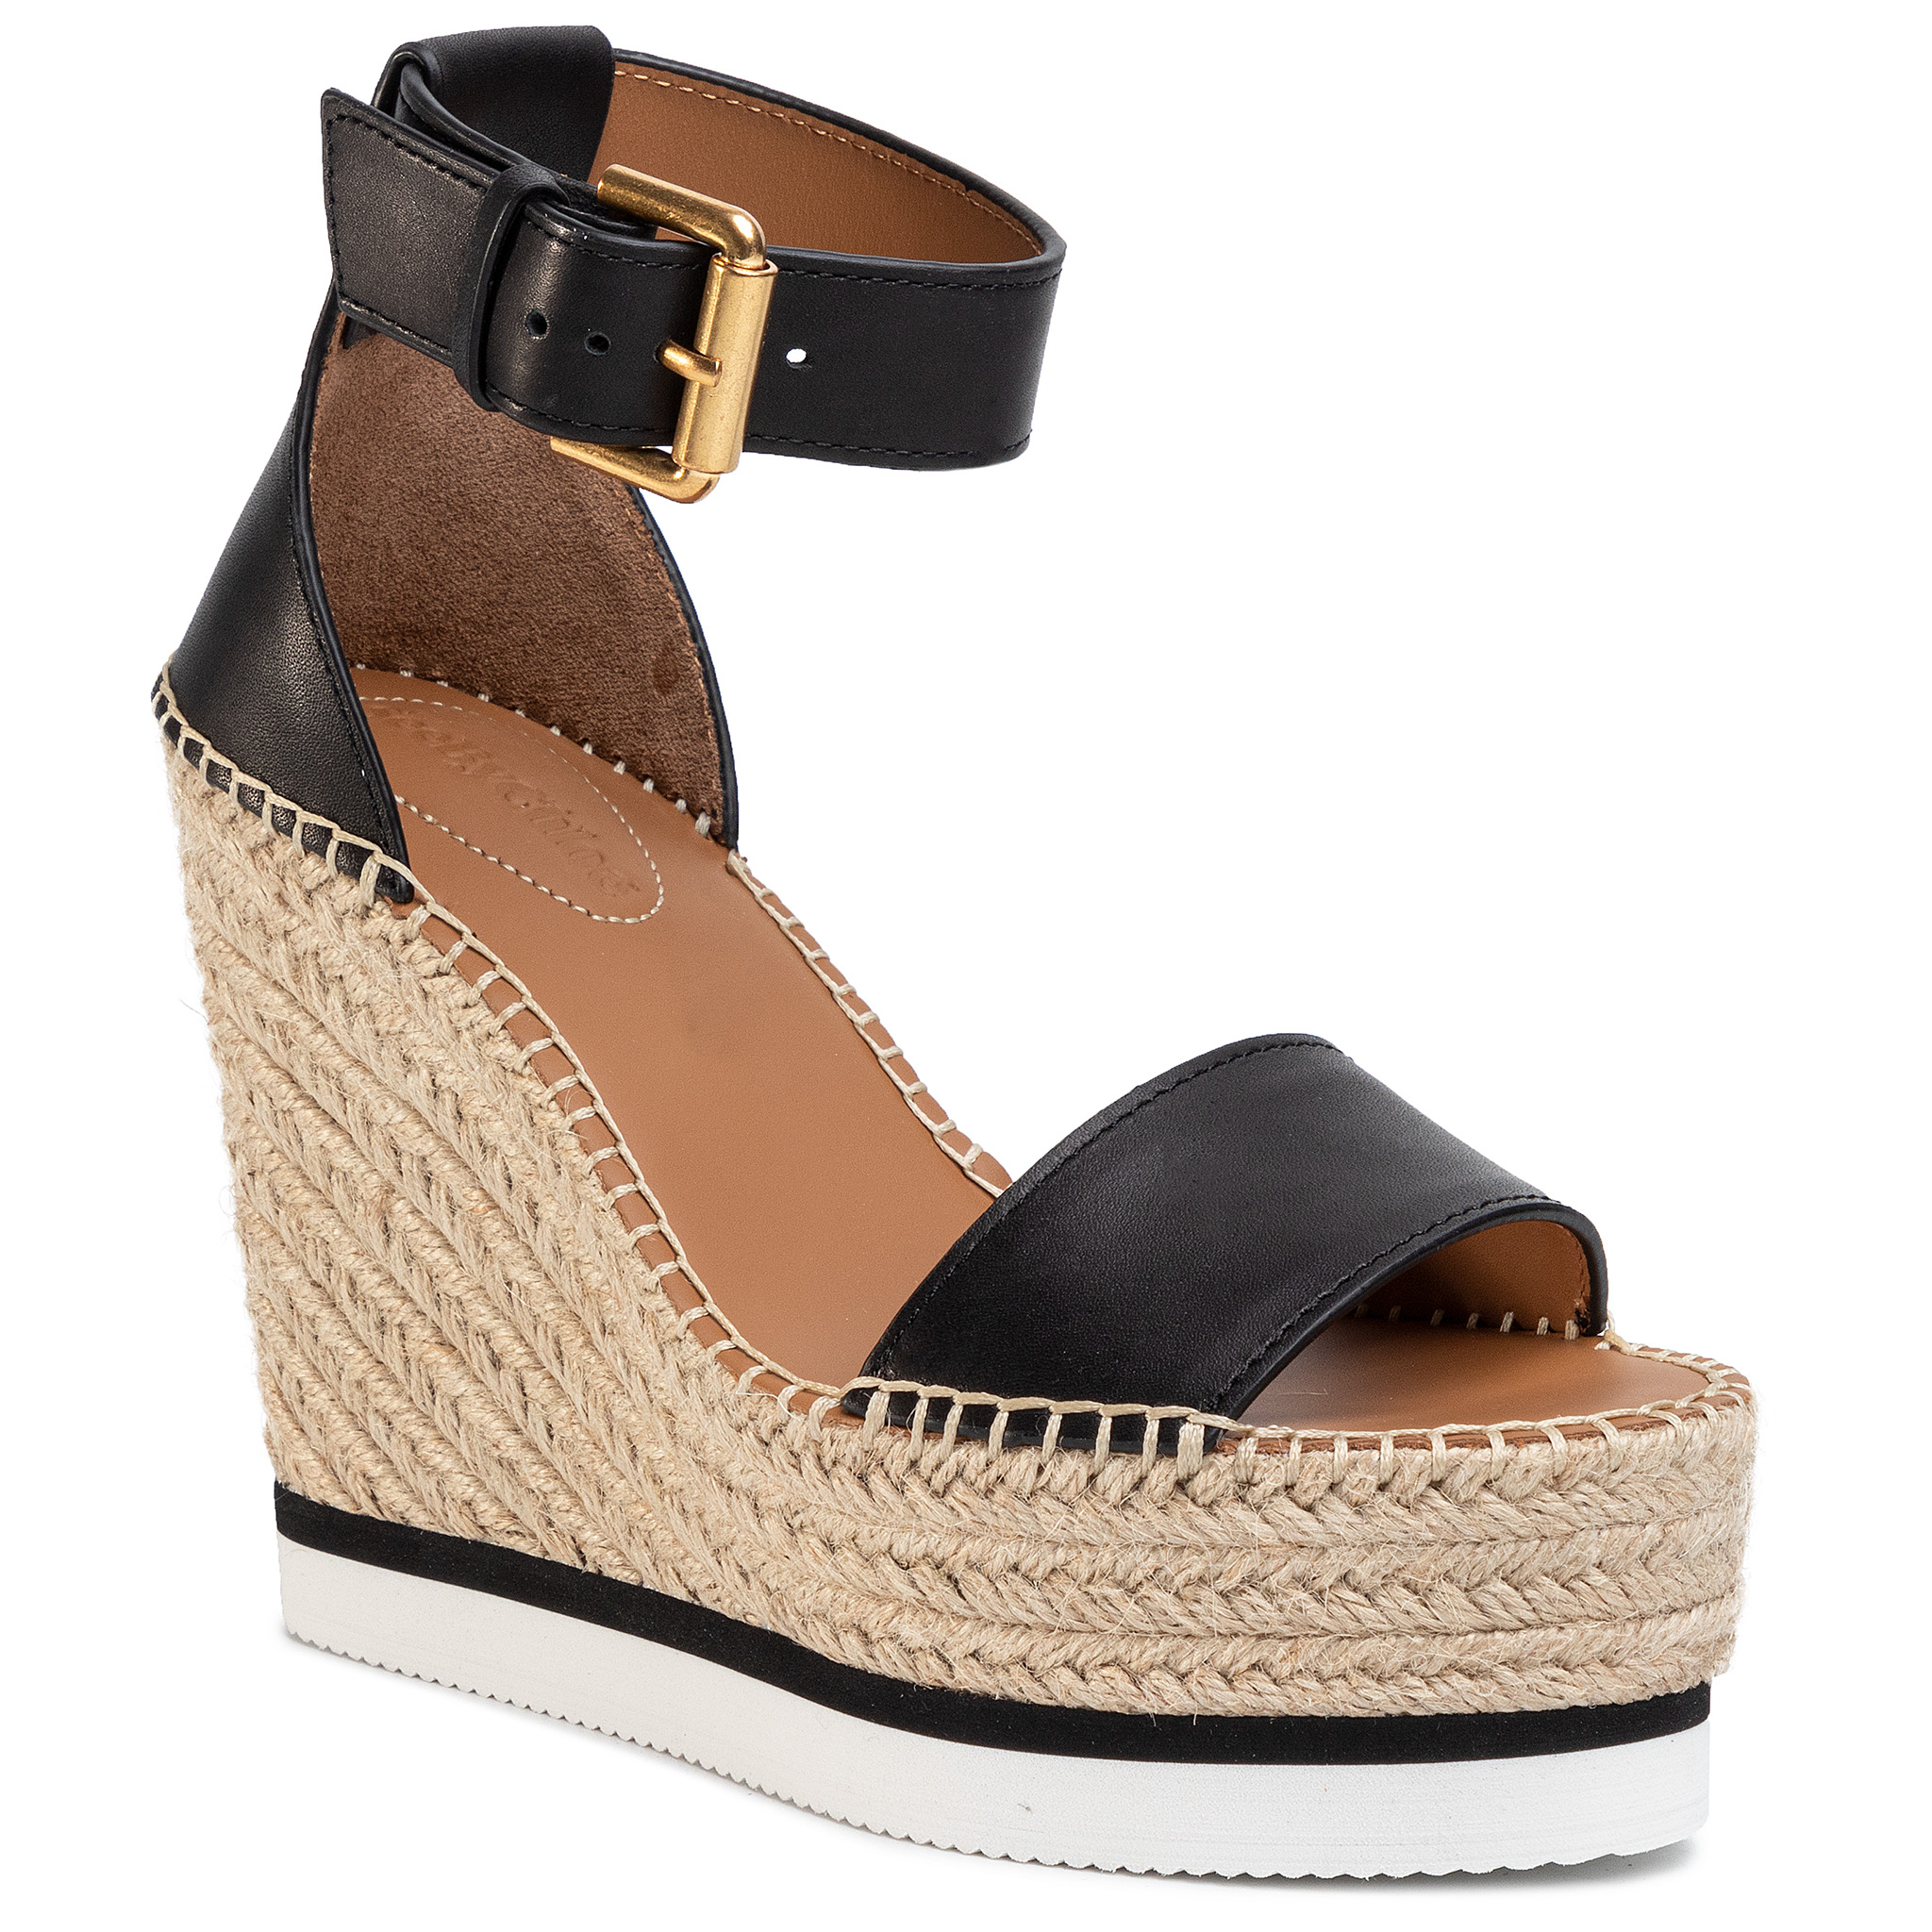 Image of Espadrillas SEE BY CHLOÉ - SB26152 Natural Calf 999